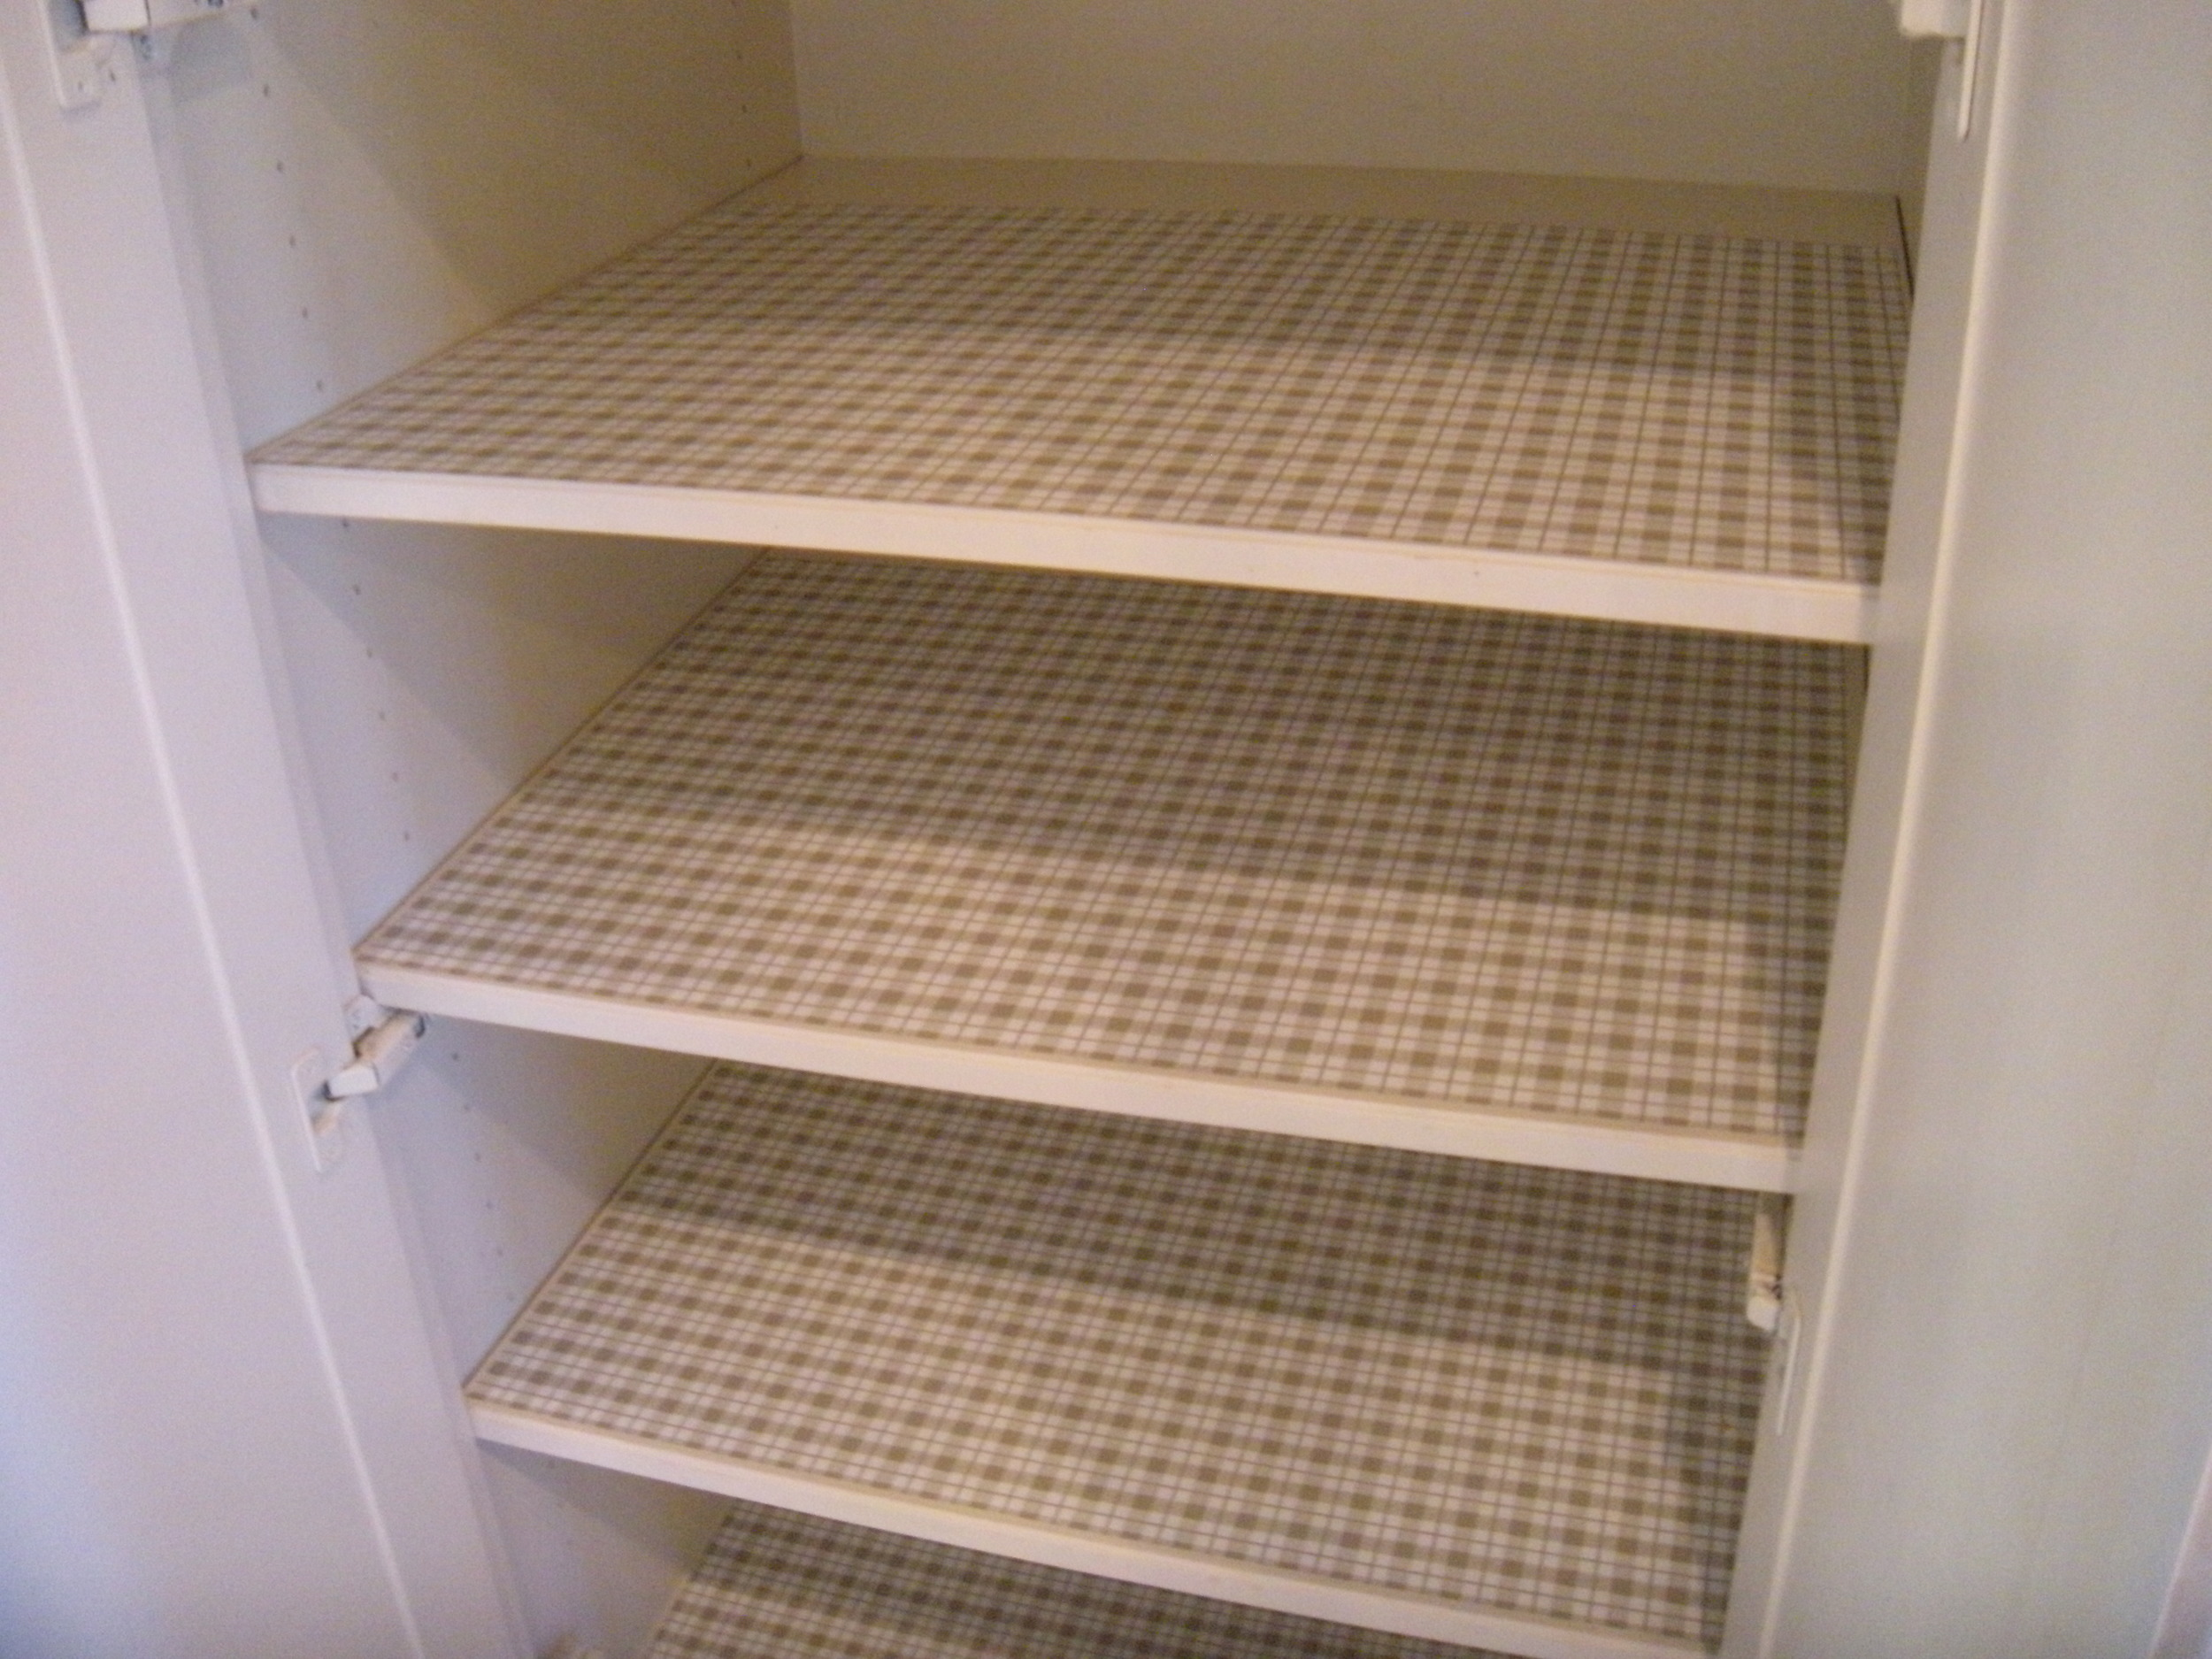 Shelf papermakes the shelves look clean and ready to receive stuff.